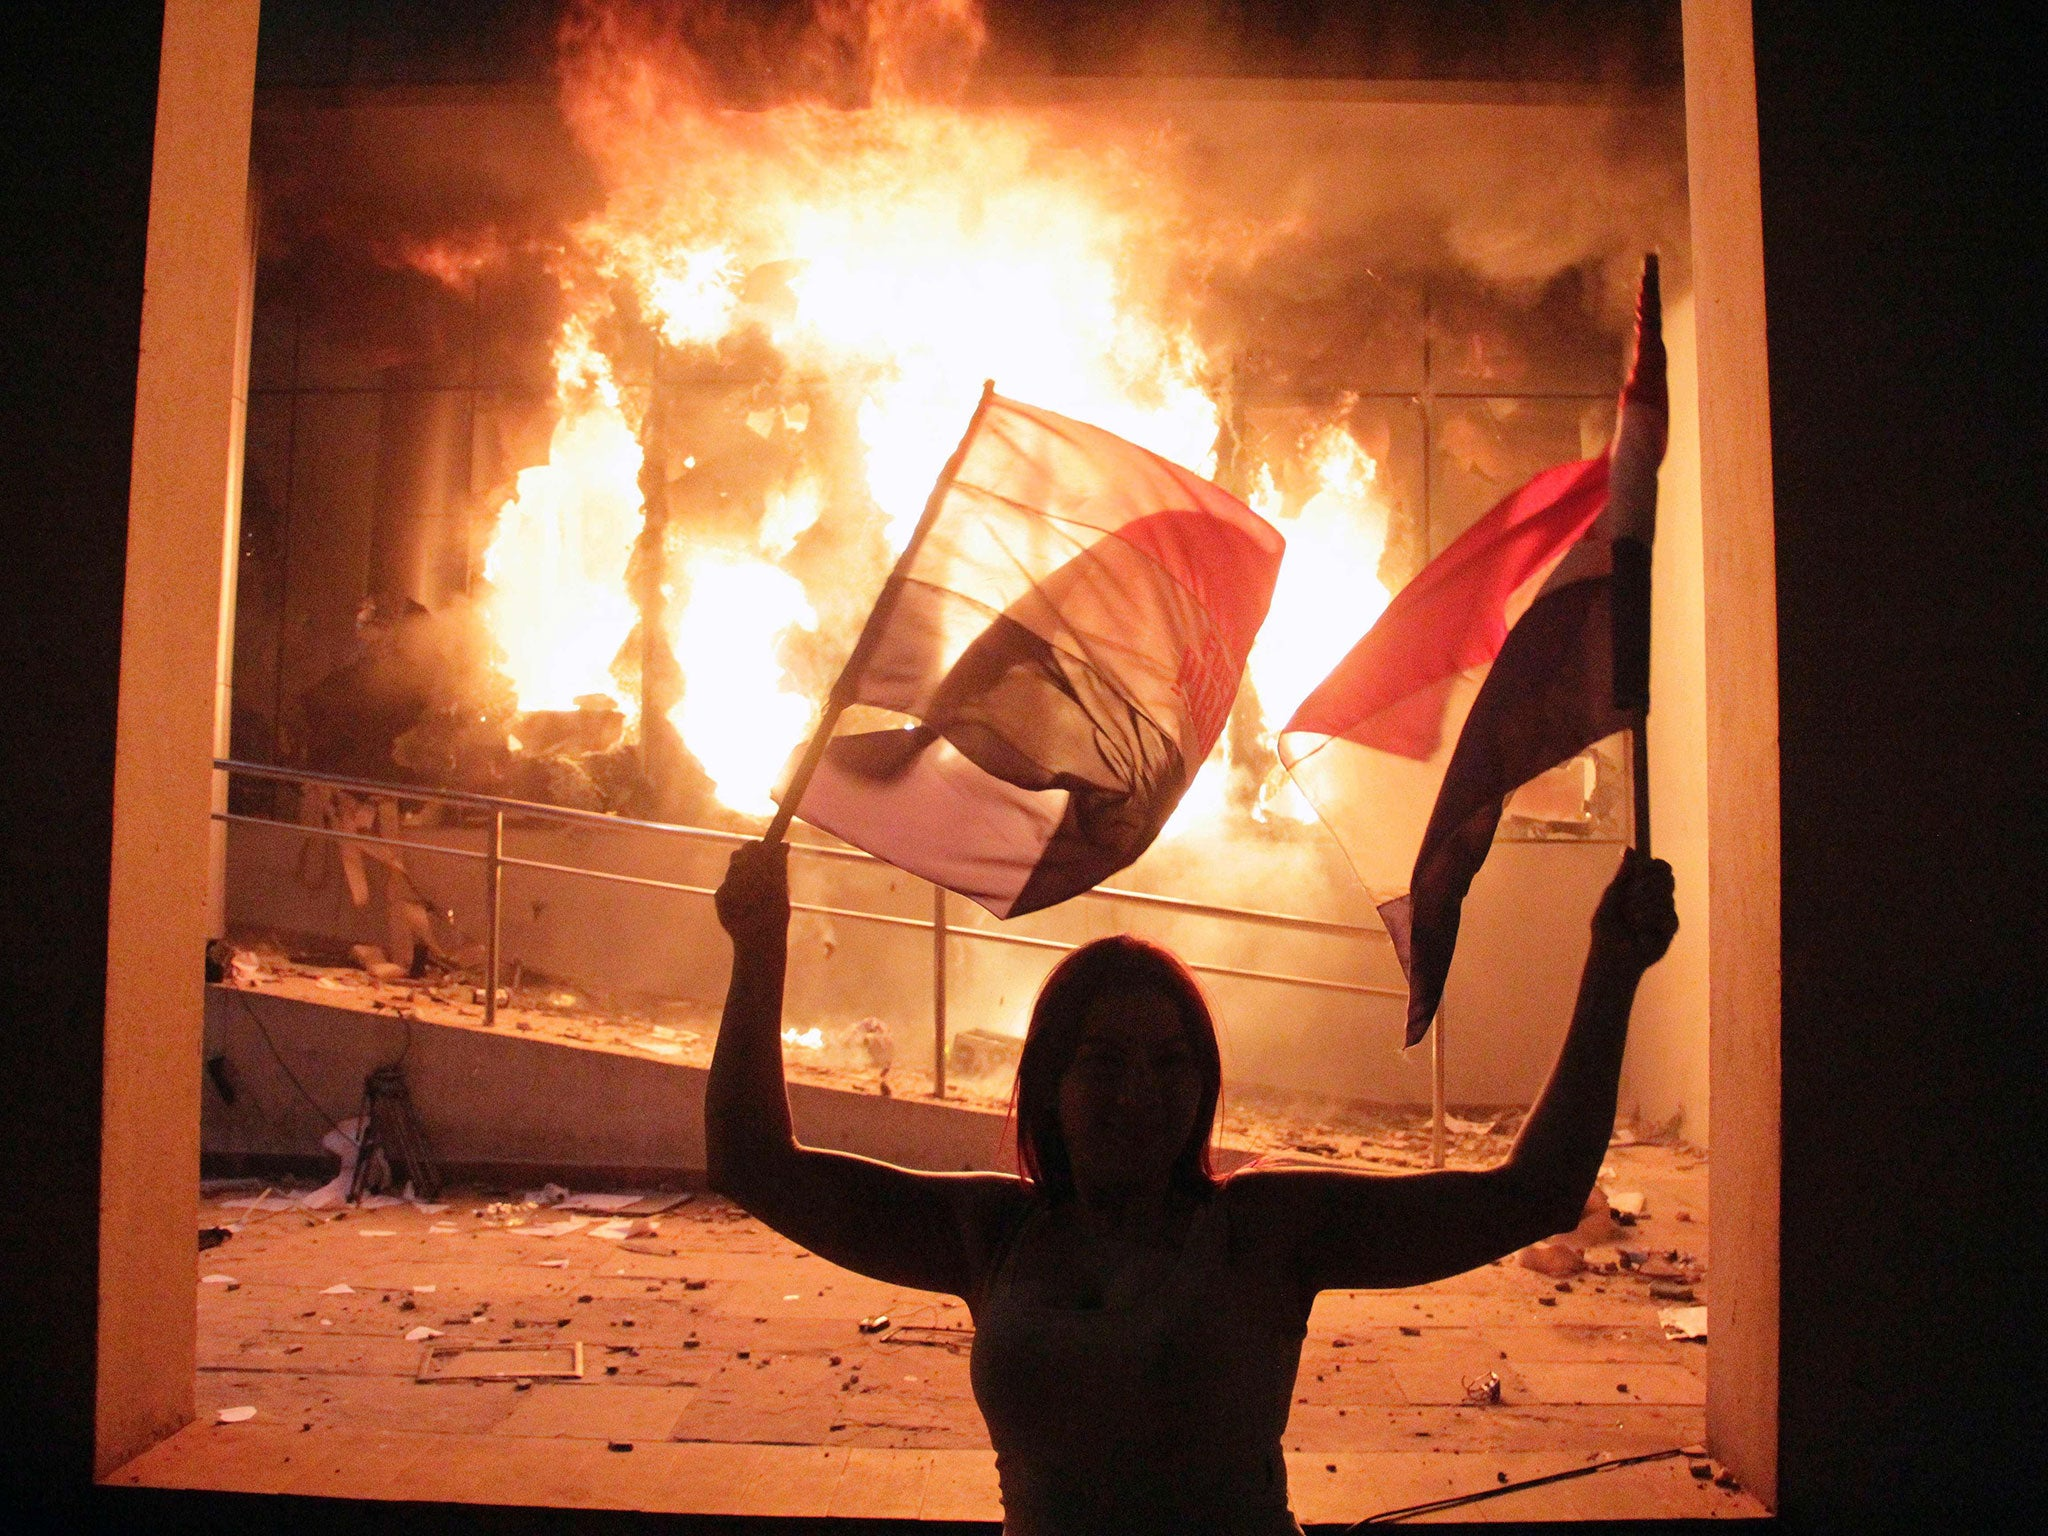 Paraguay: Protesters set fire to Congress after secret vote that